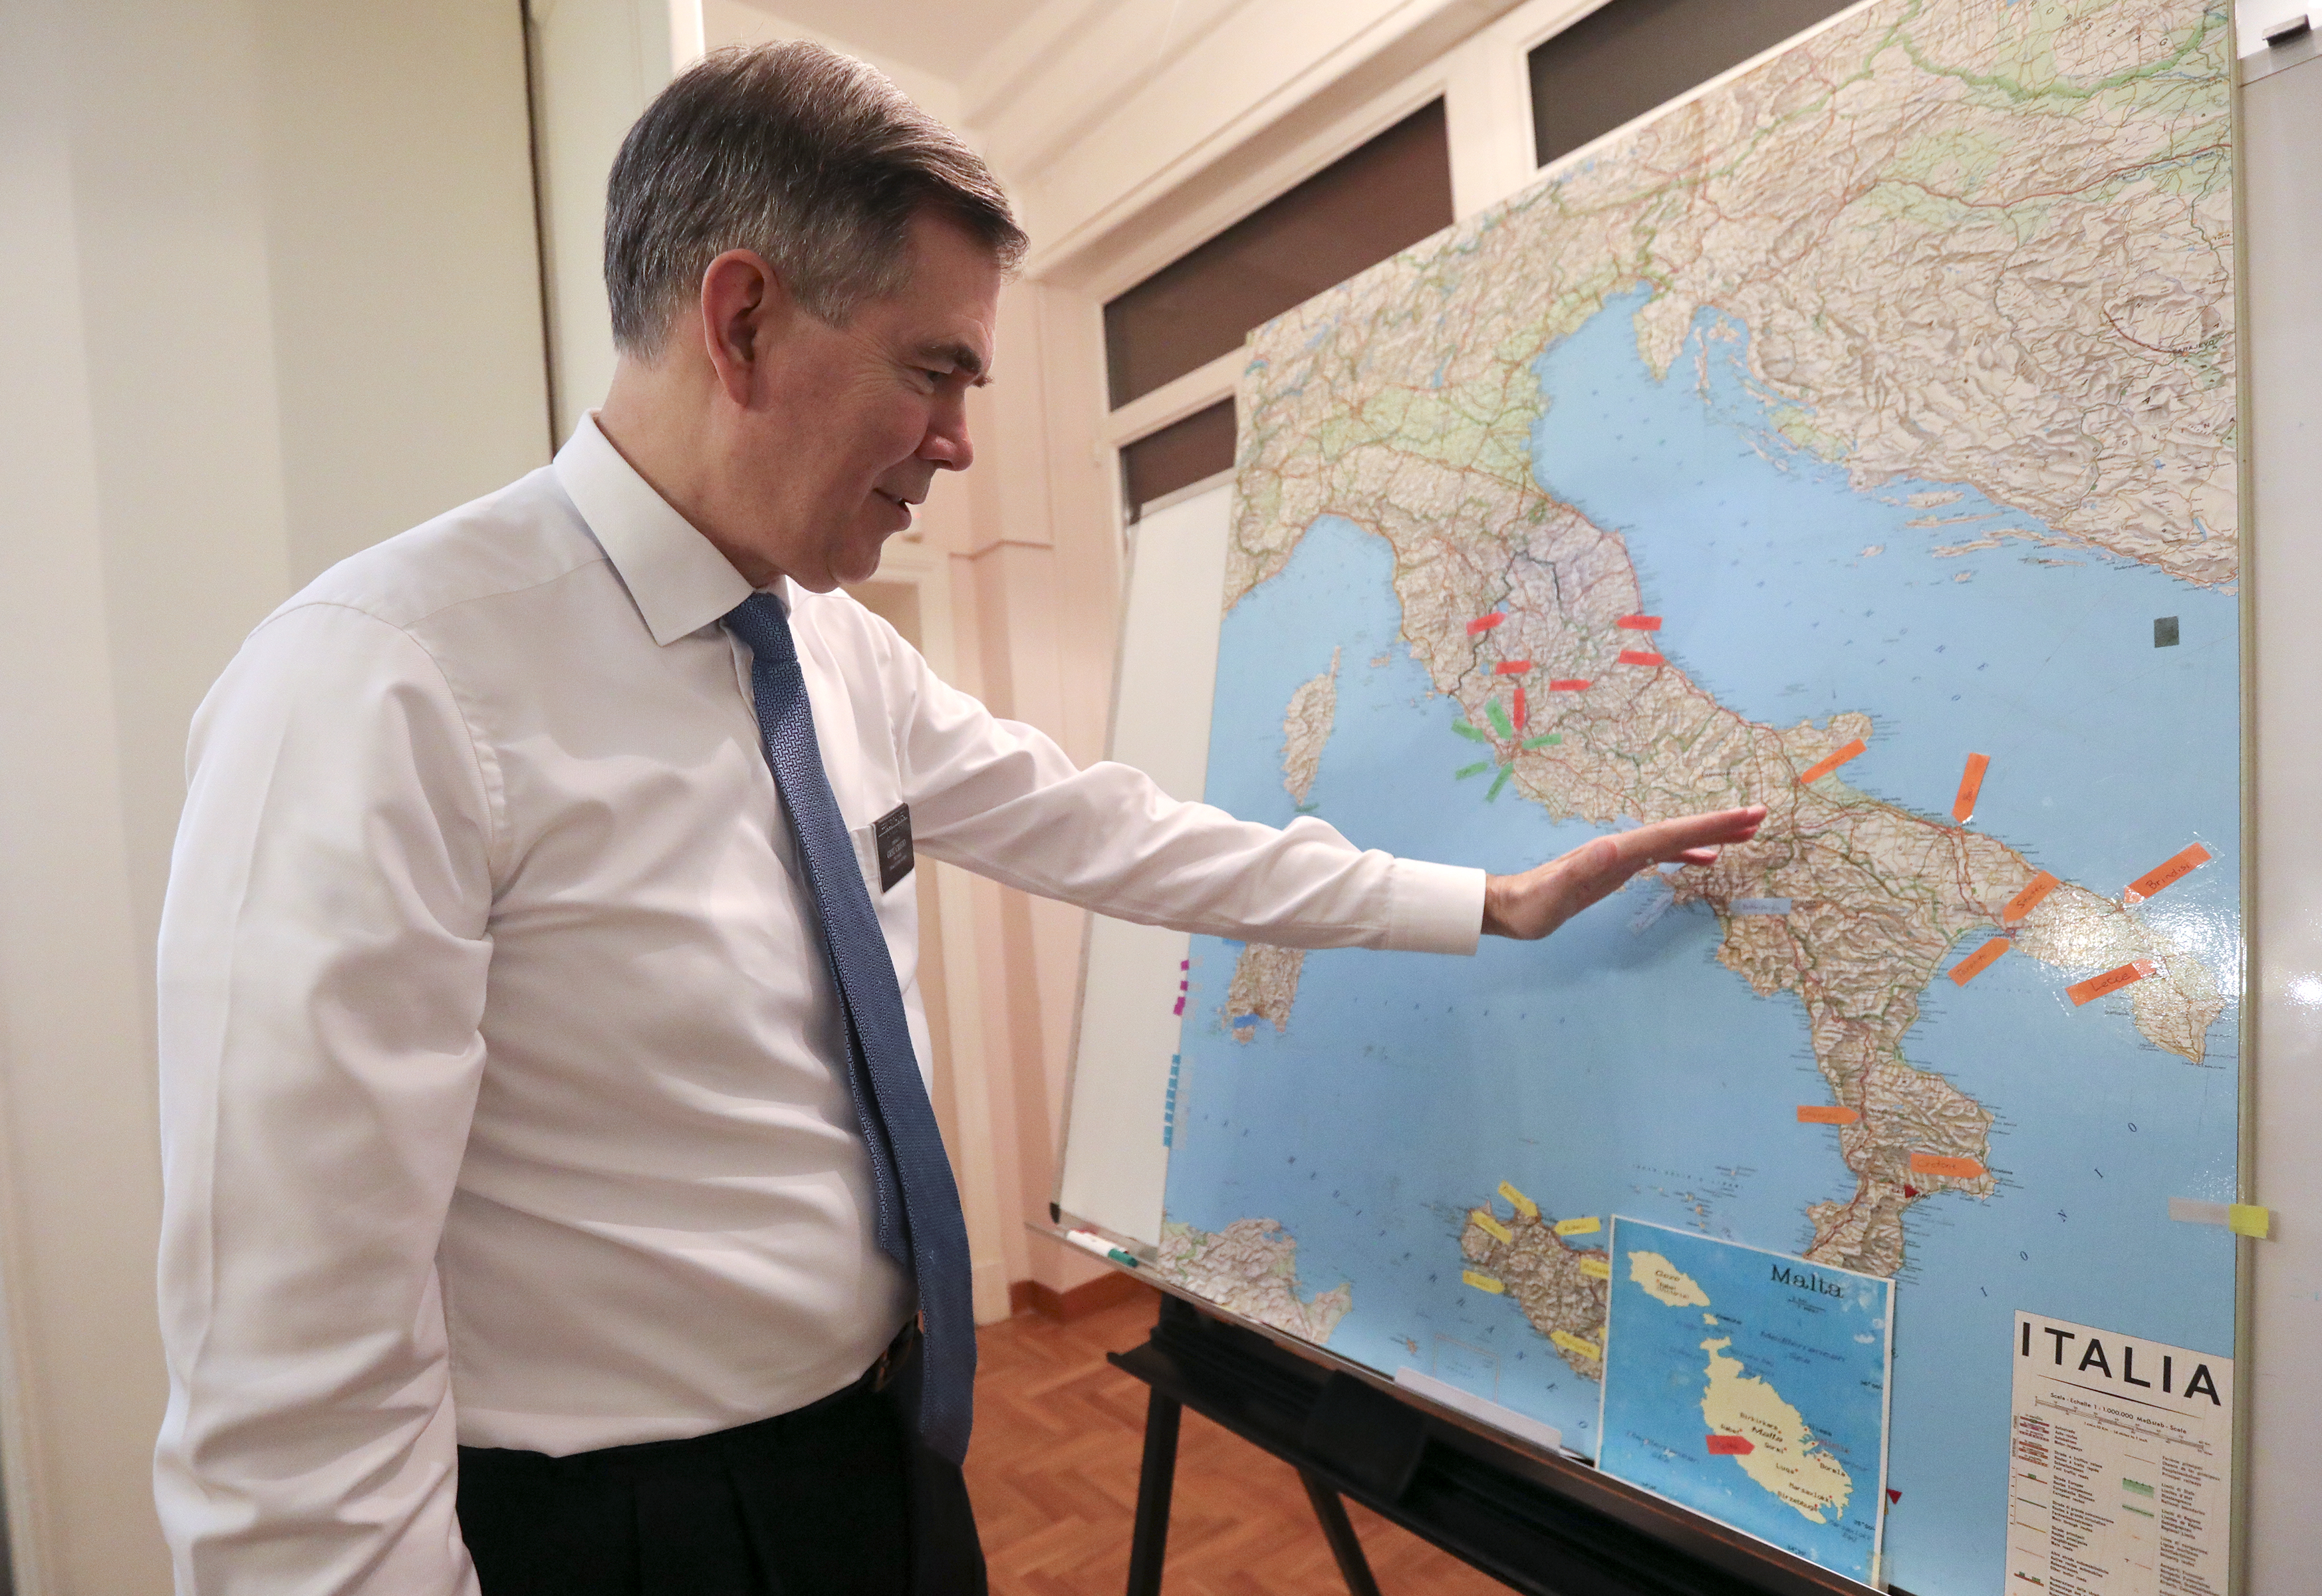 President Michael D. Pickerd, of the Italy Rome Mission, talks about missionary activity in Italy at the mission home in Rome, Italy, on Friday, Nov. 16, 2018.